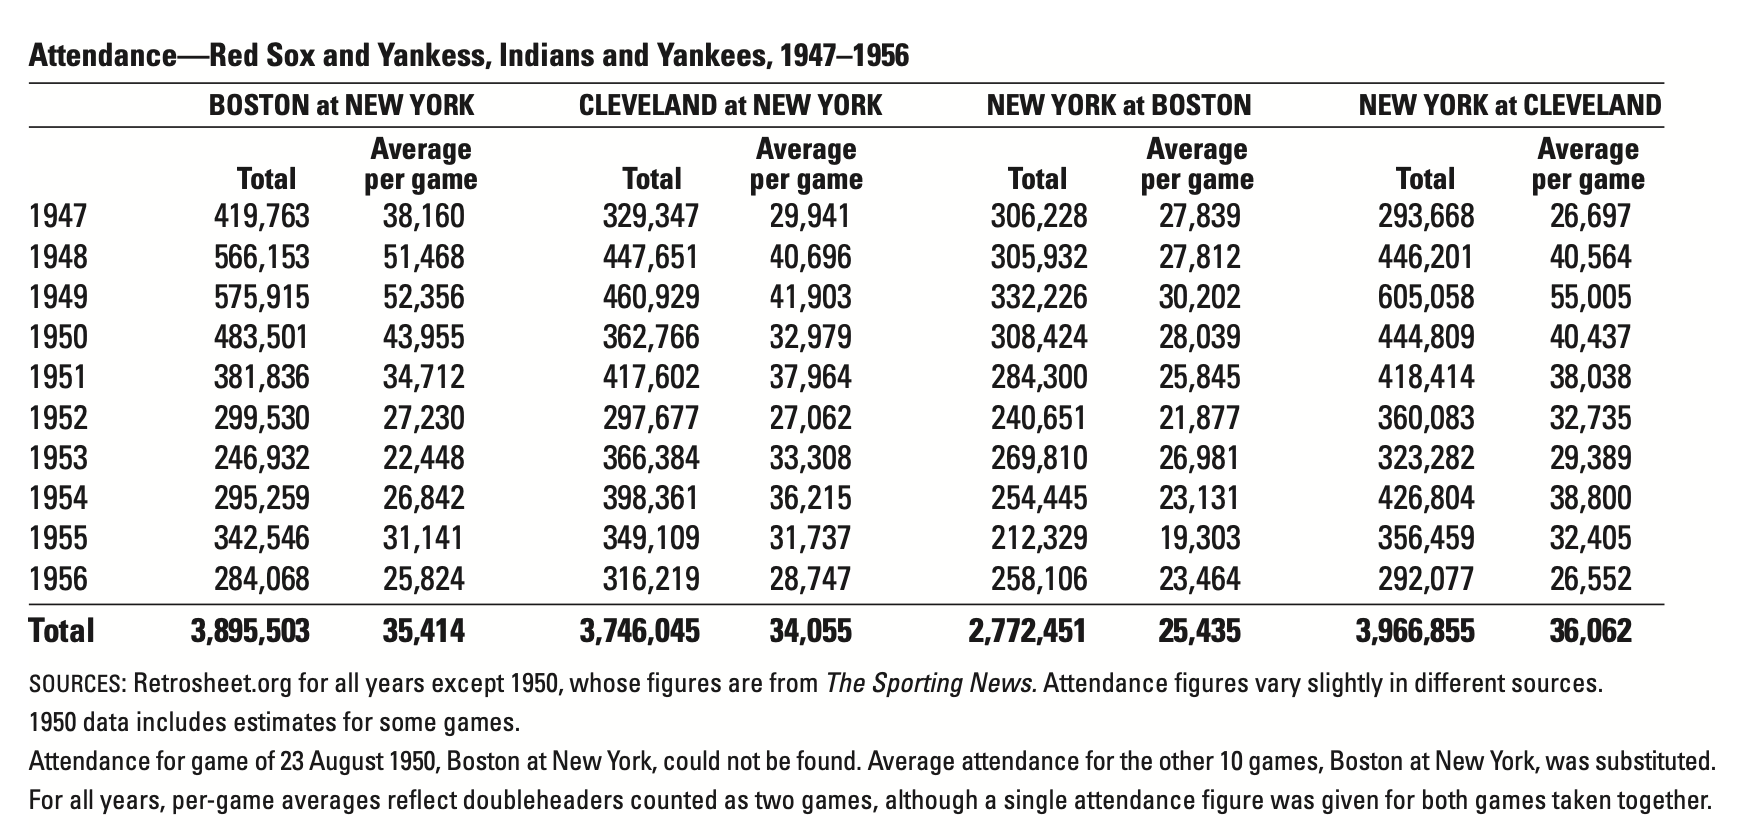 Attendance—Red Sox and Yankees, Indians and Yankees, 1947–1956 (JIM ODENKIRK)